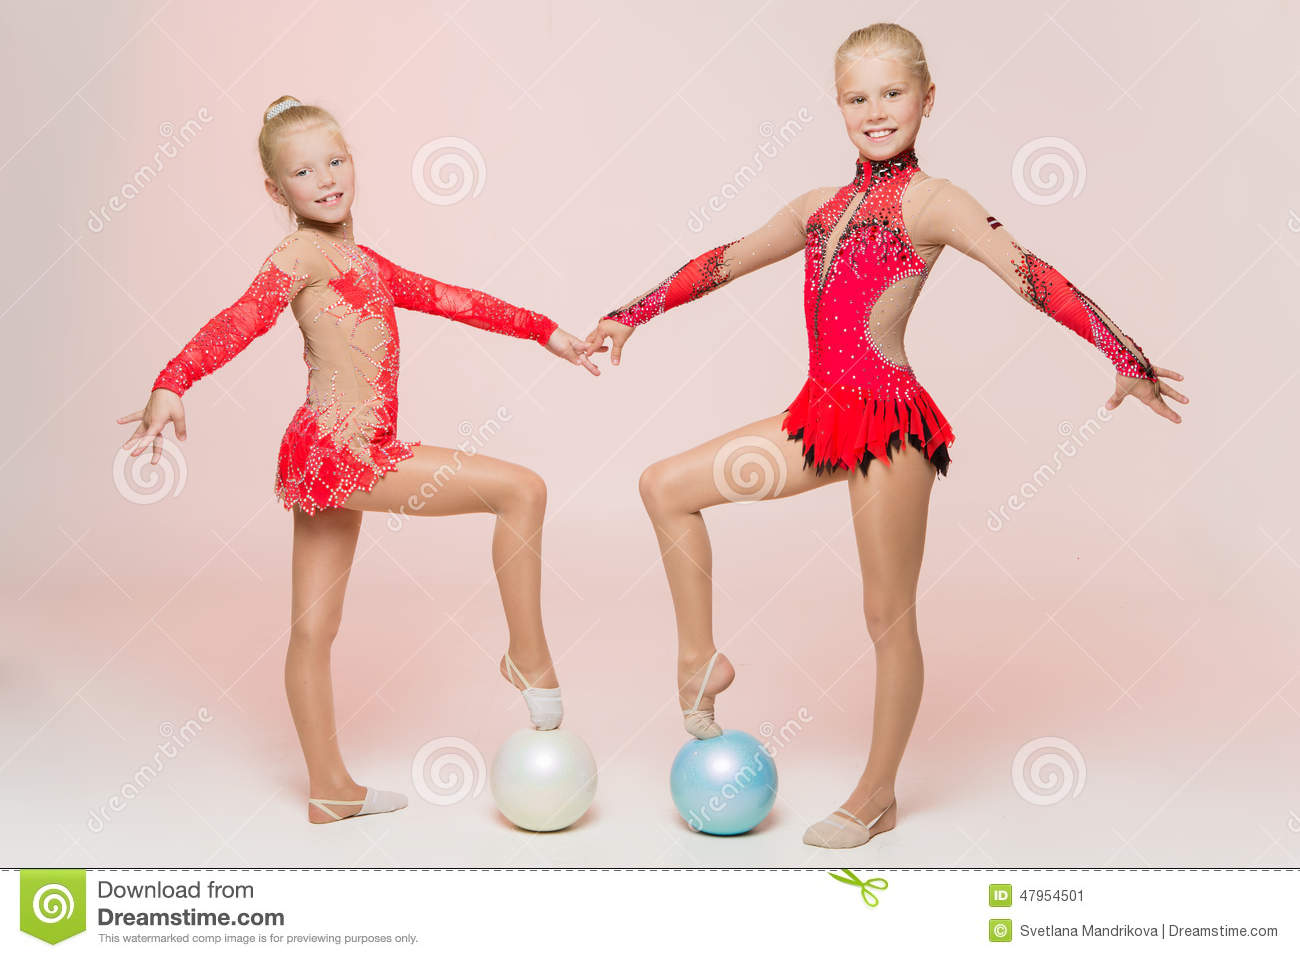 Two cute artistic gymnasts